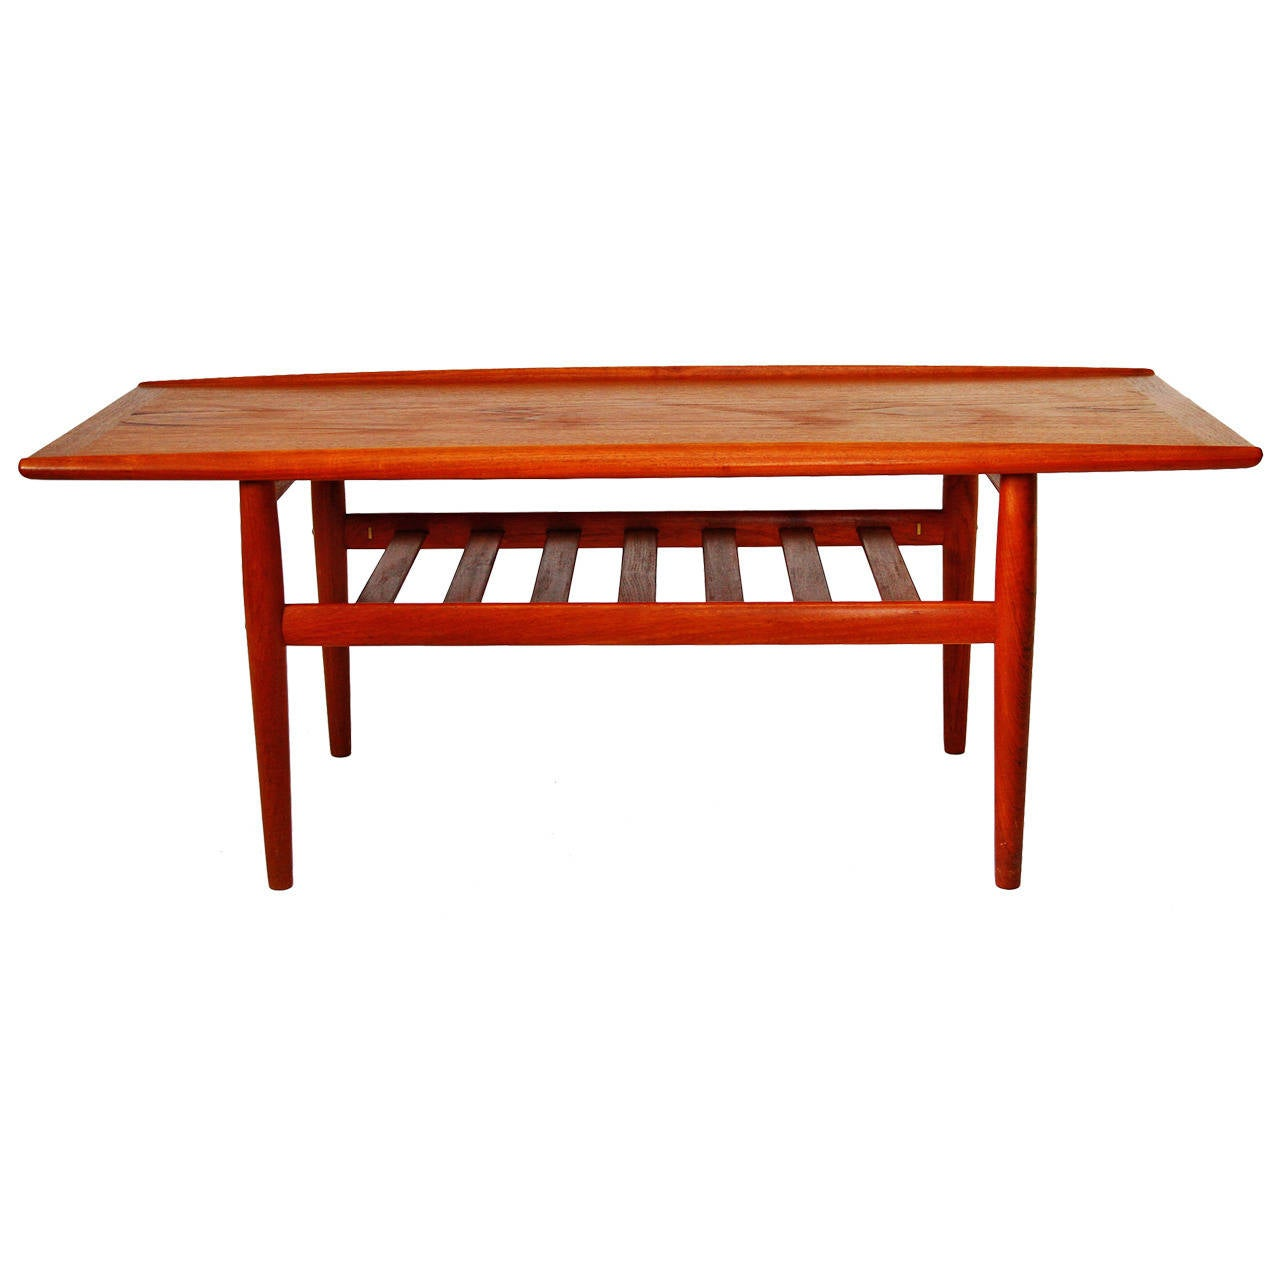 Danish Teak Coffee Table By Grete Jalk 1960s For Sale At 1stdibs